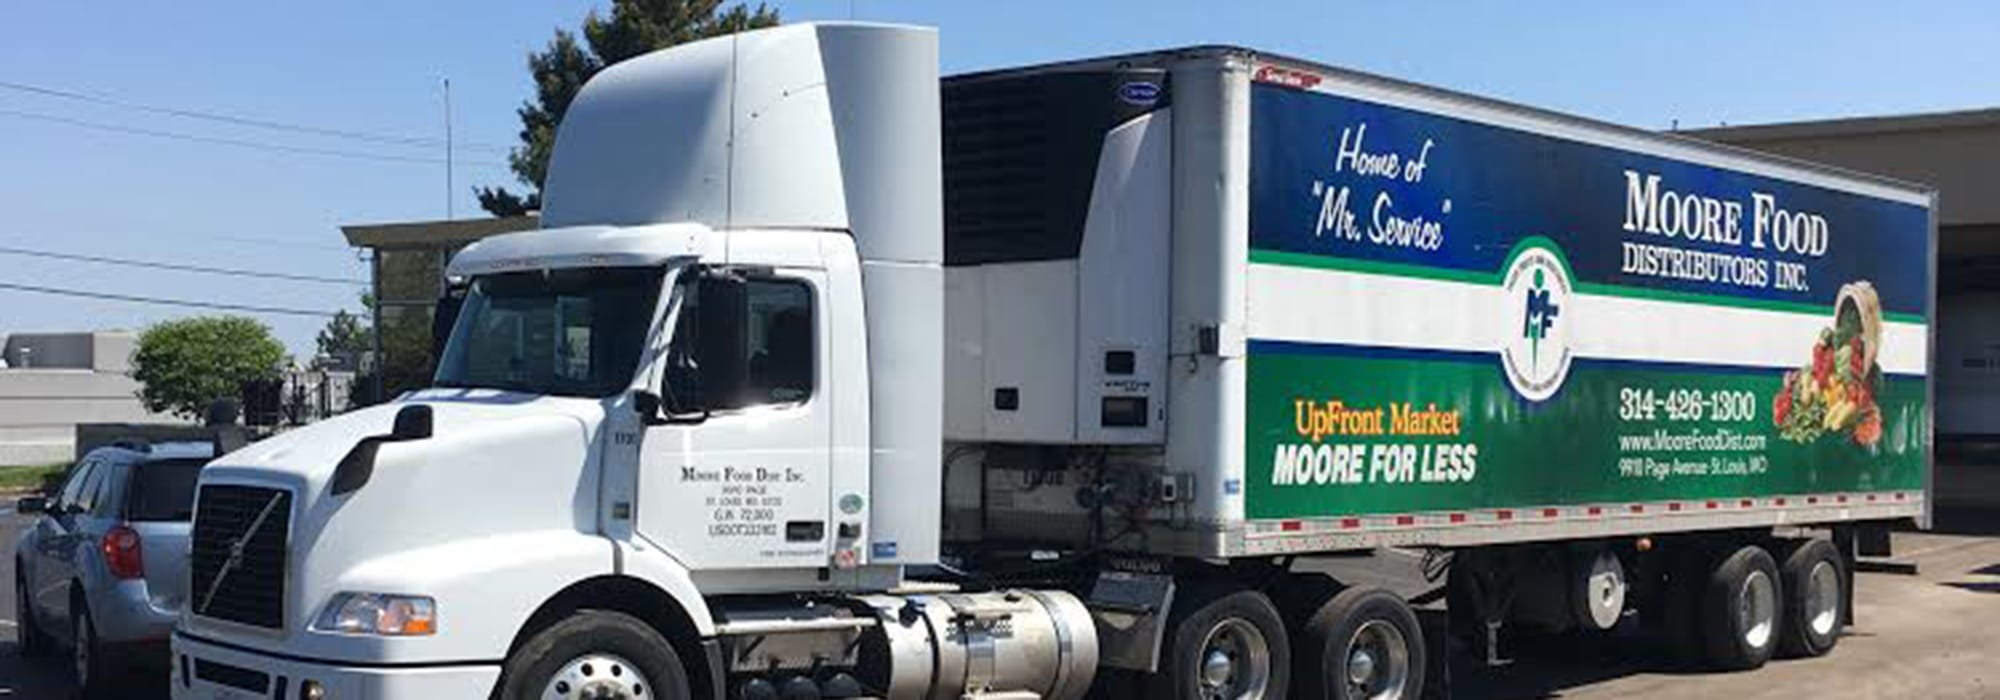 Moore Food Distributors